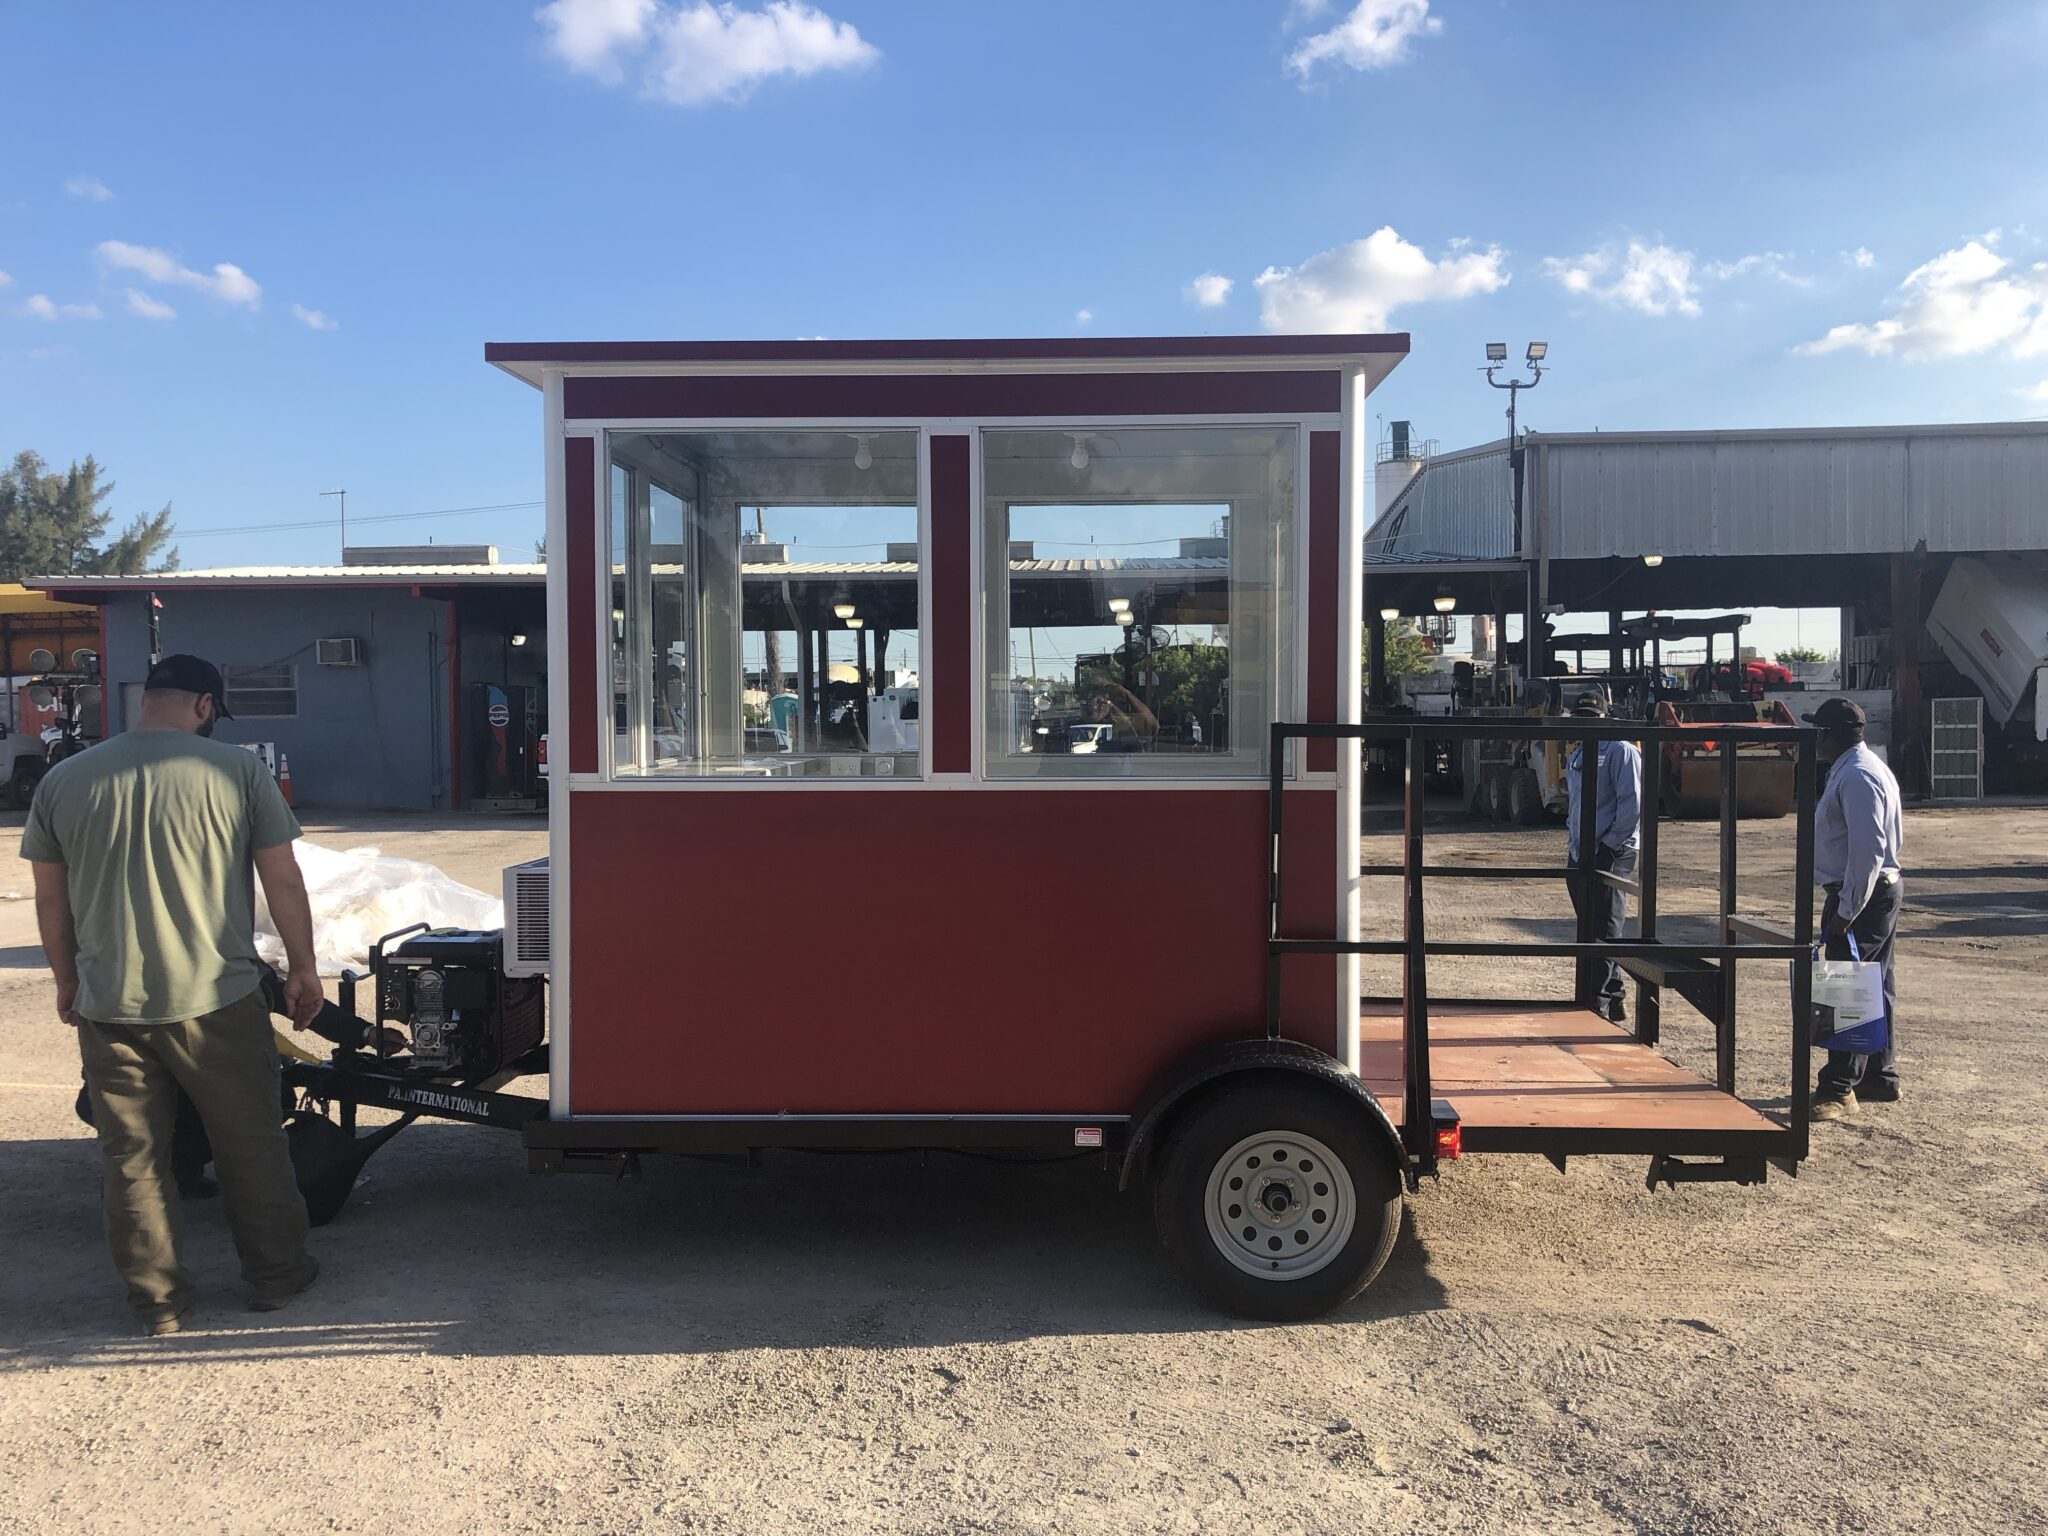 6x8 Trailer Booth in Miami, FL with Generator, Stabilizer Jacks, Built-in AC, and Custom Exterior Color for Construction Site Security Guard Booth